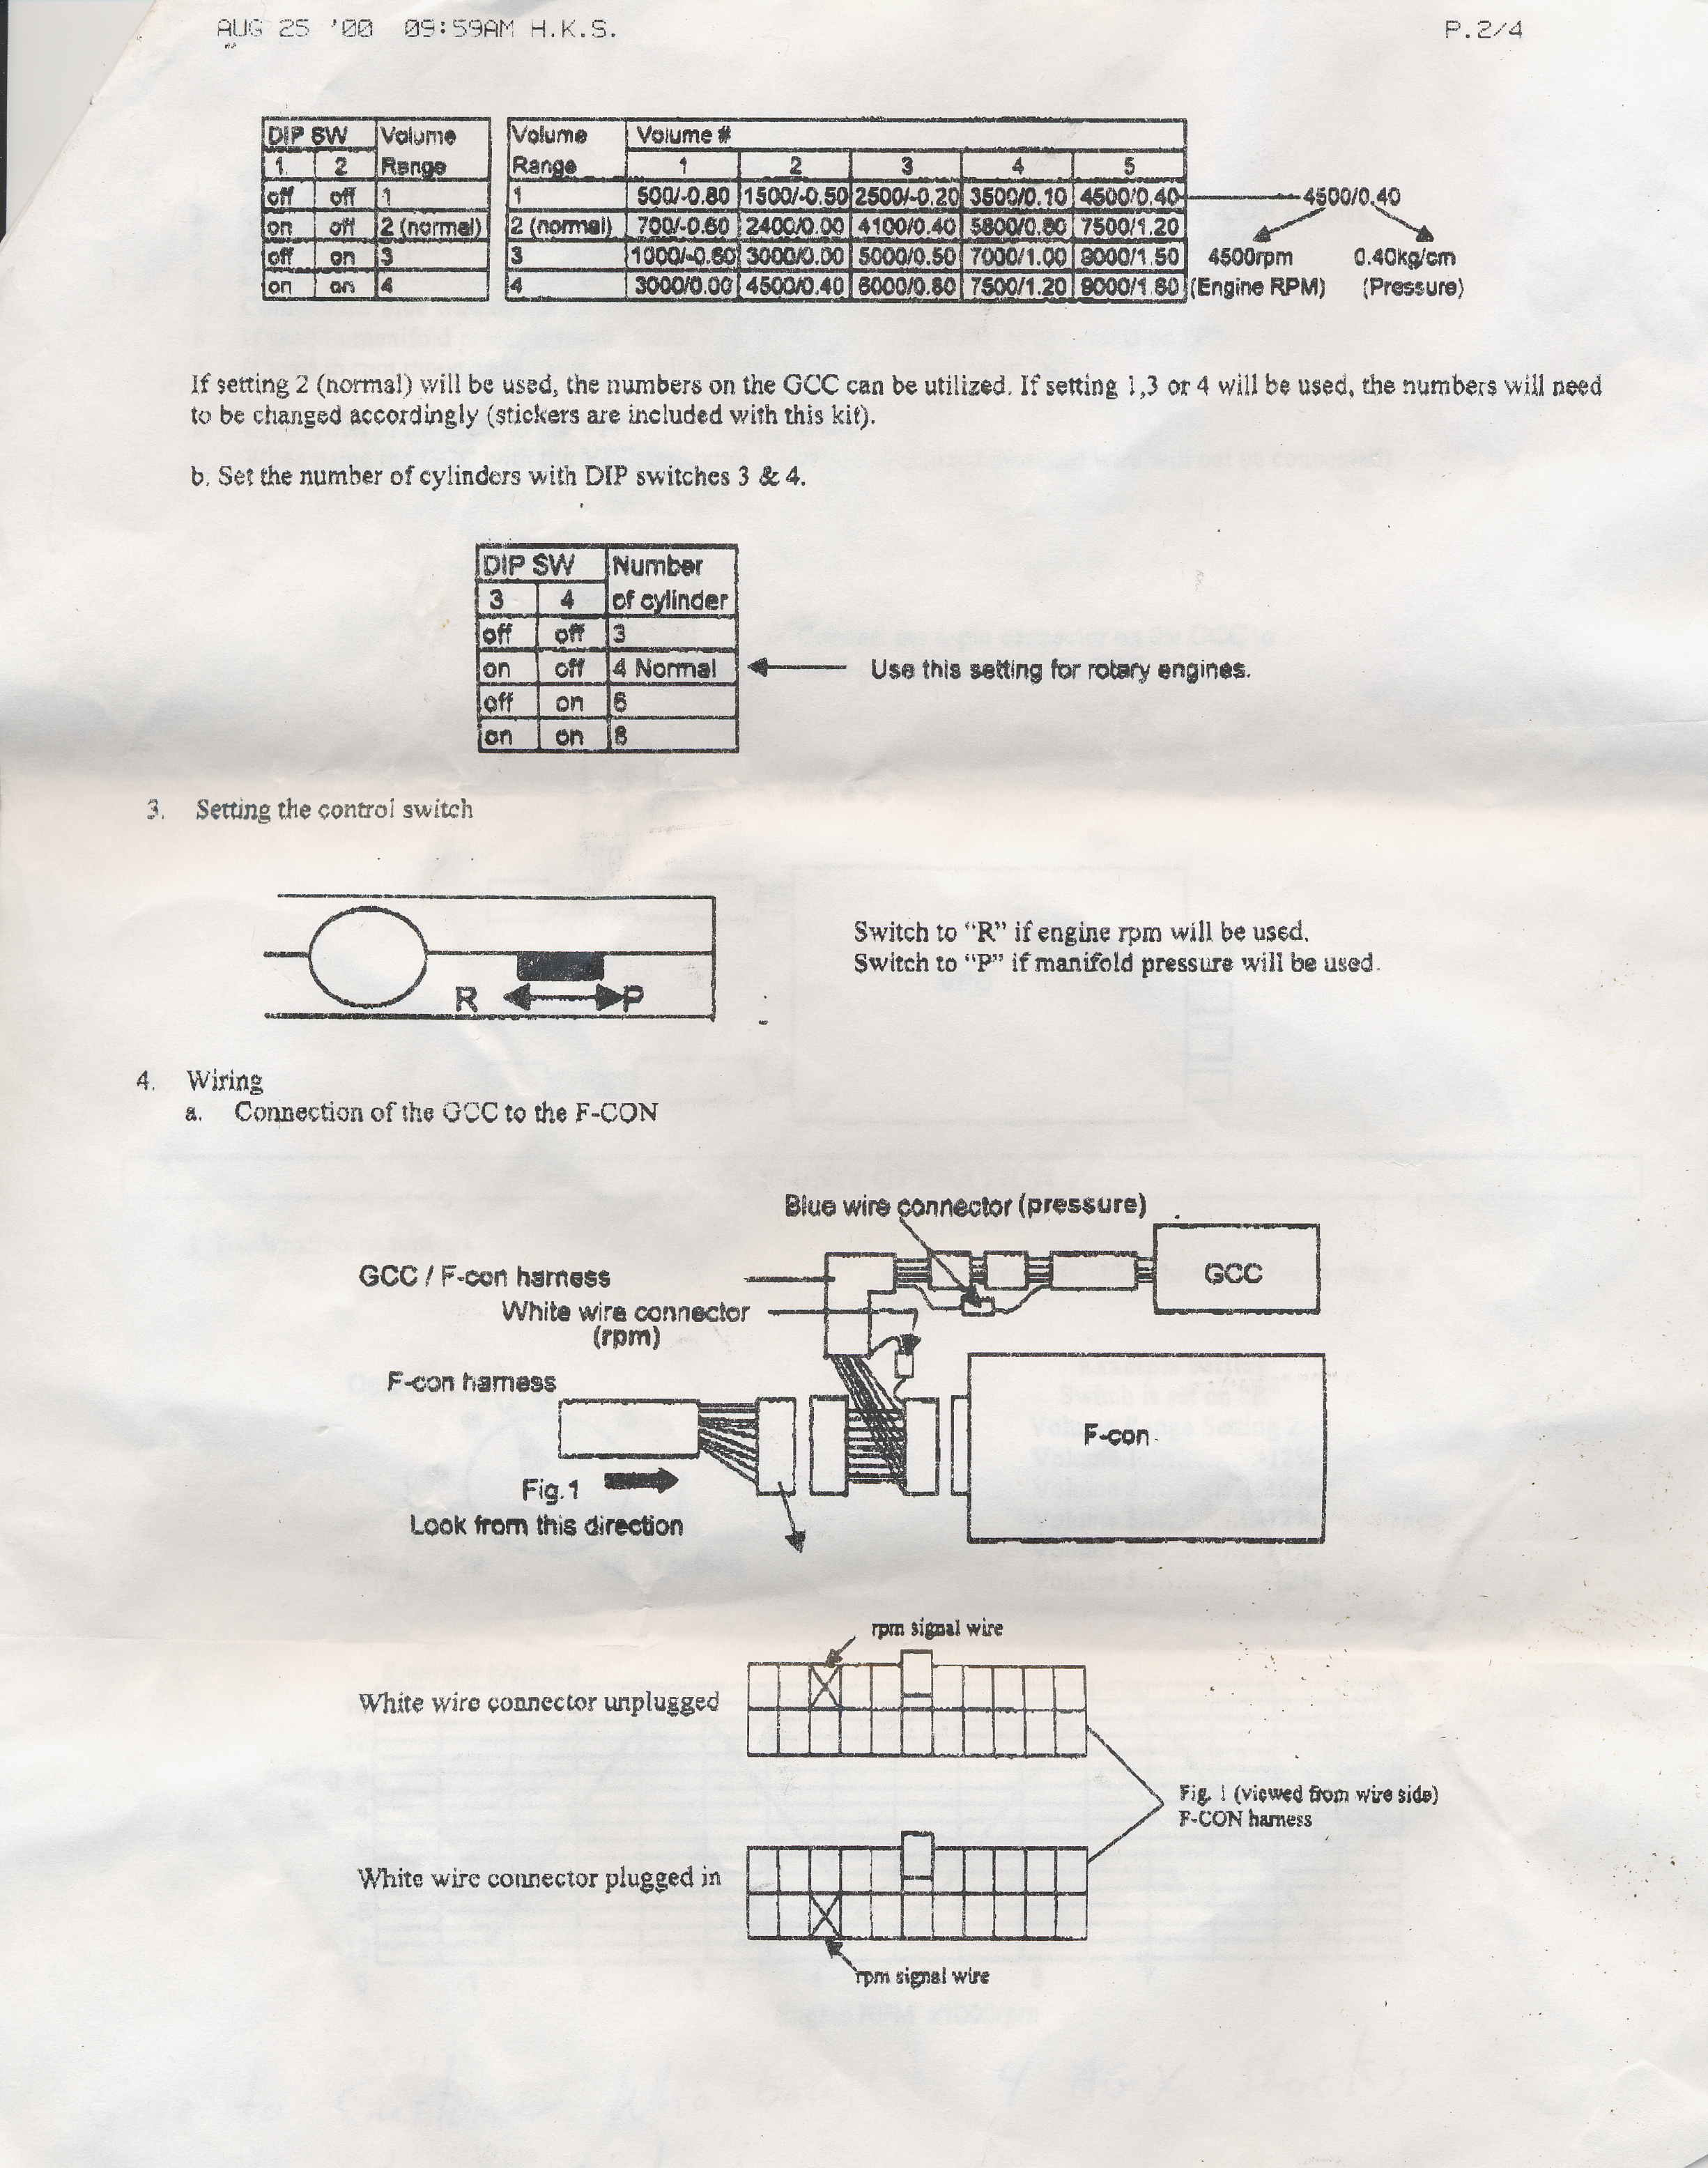 hks gcc manual 02 hks gcc graphical control computer hks fcd wiring diagram at love-stories.co